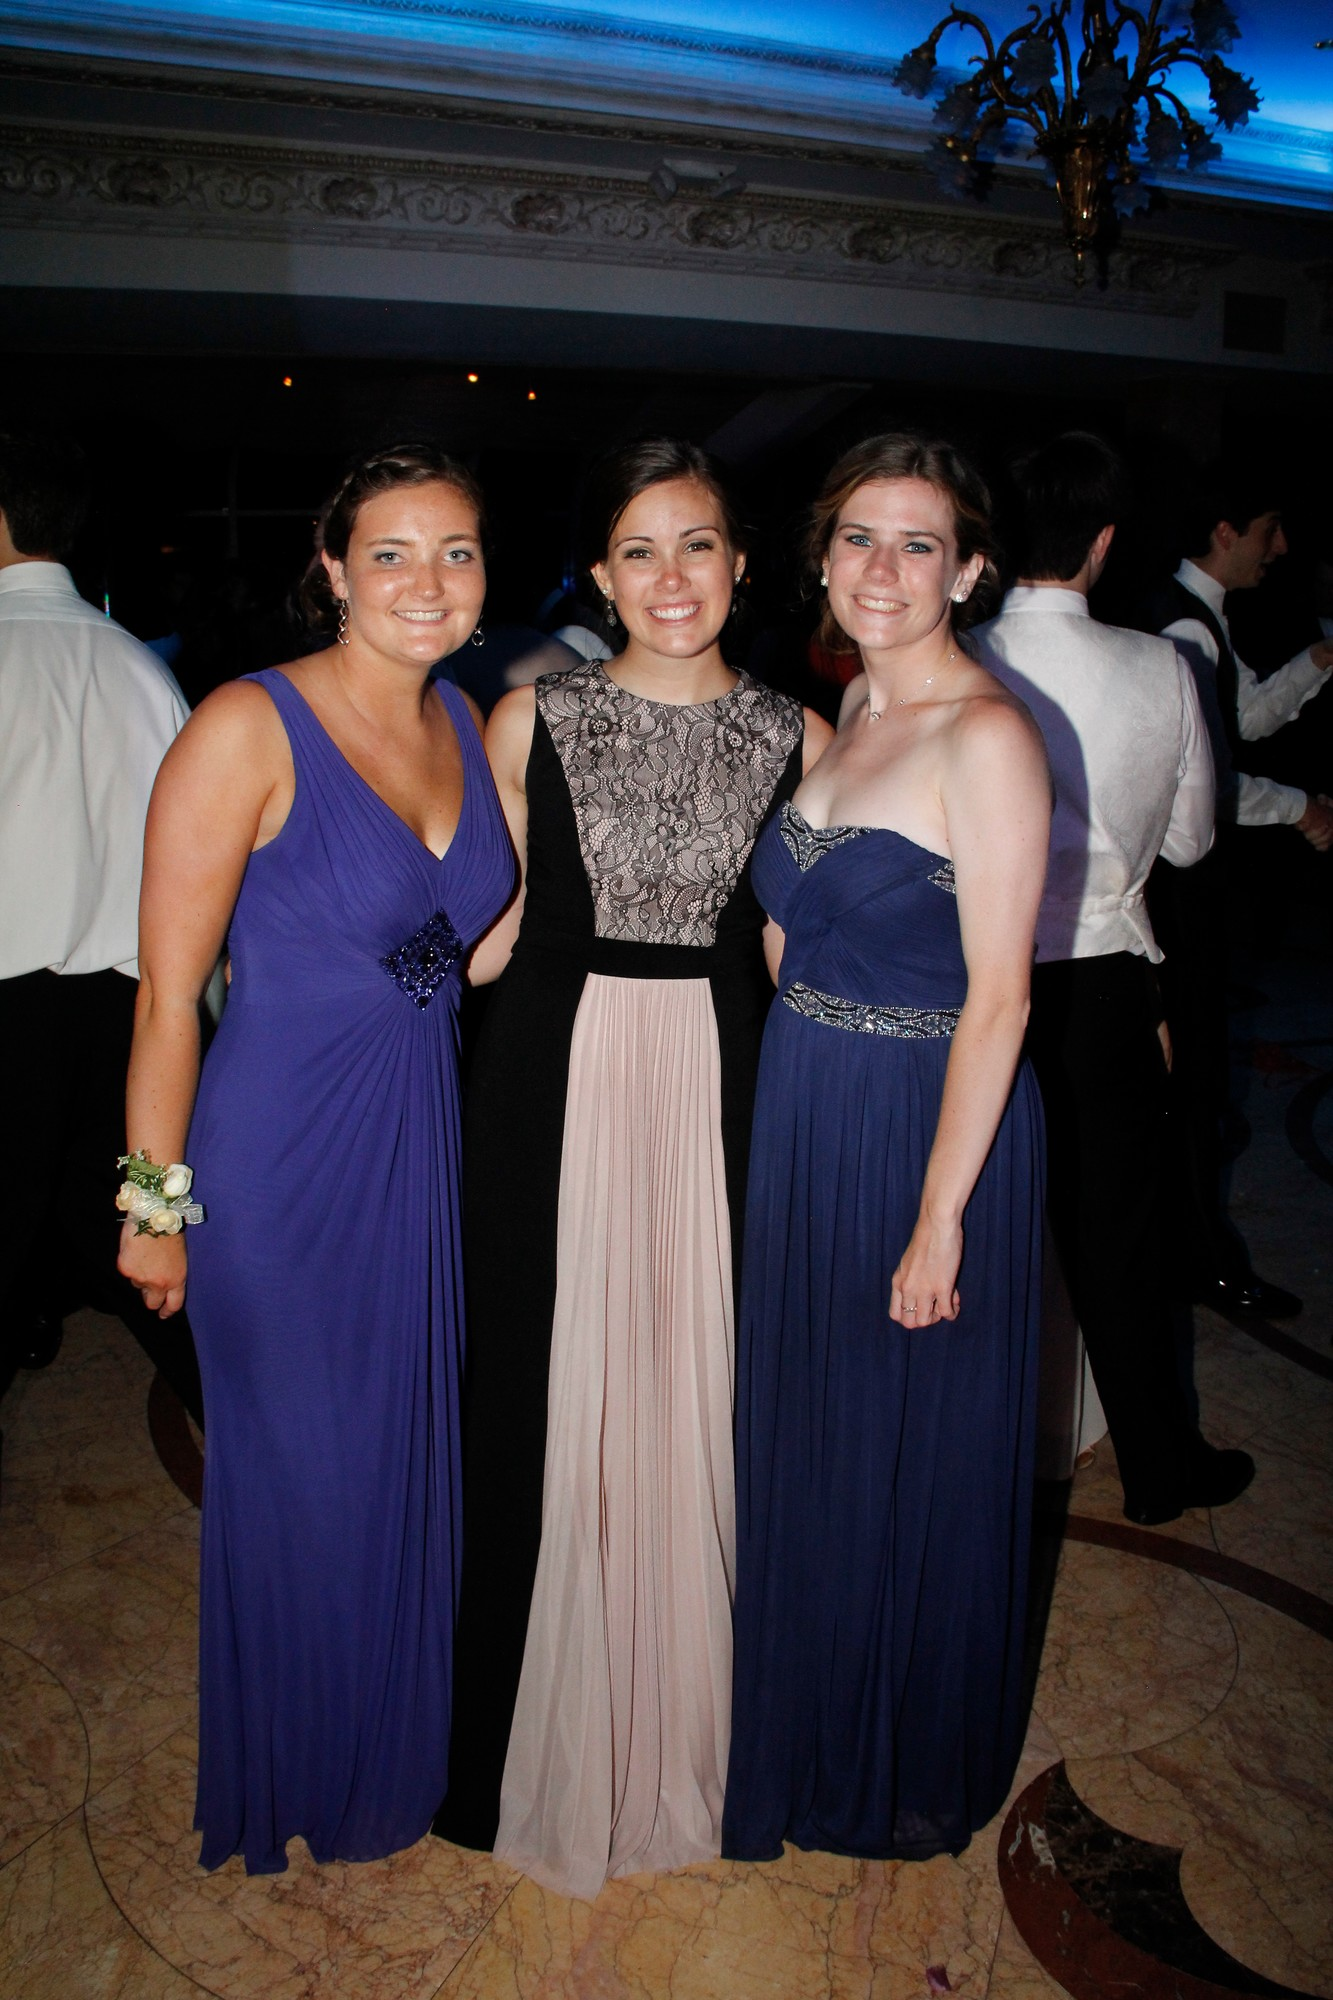 Julie Flanagan, Meghan Mullooly and Bridget Dooney